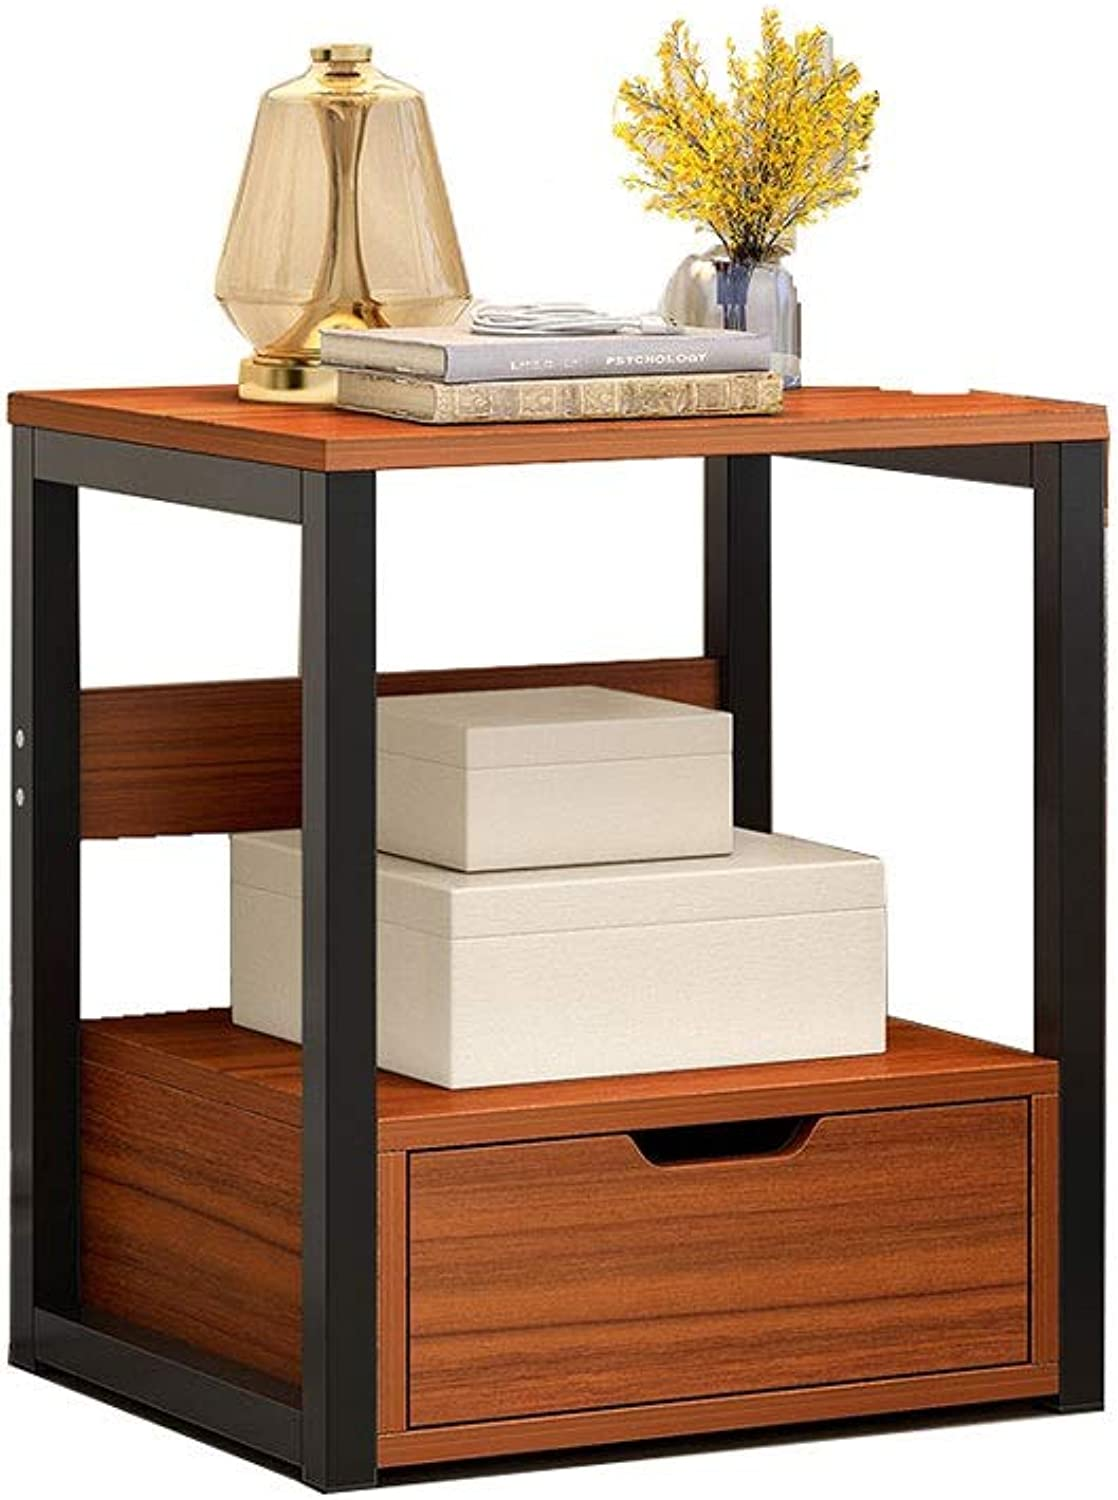 Modern Minimalist White Coffee Table, Living Room Bedroom Locker with Drawer (color   Brown)